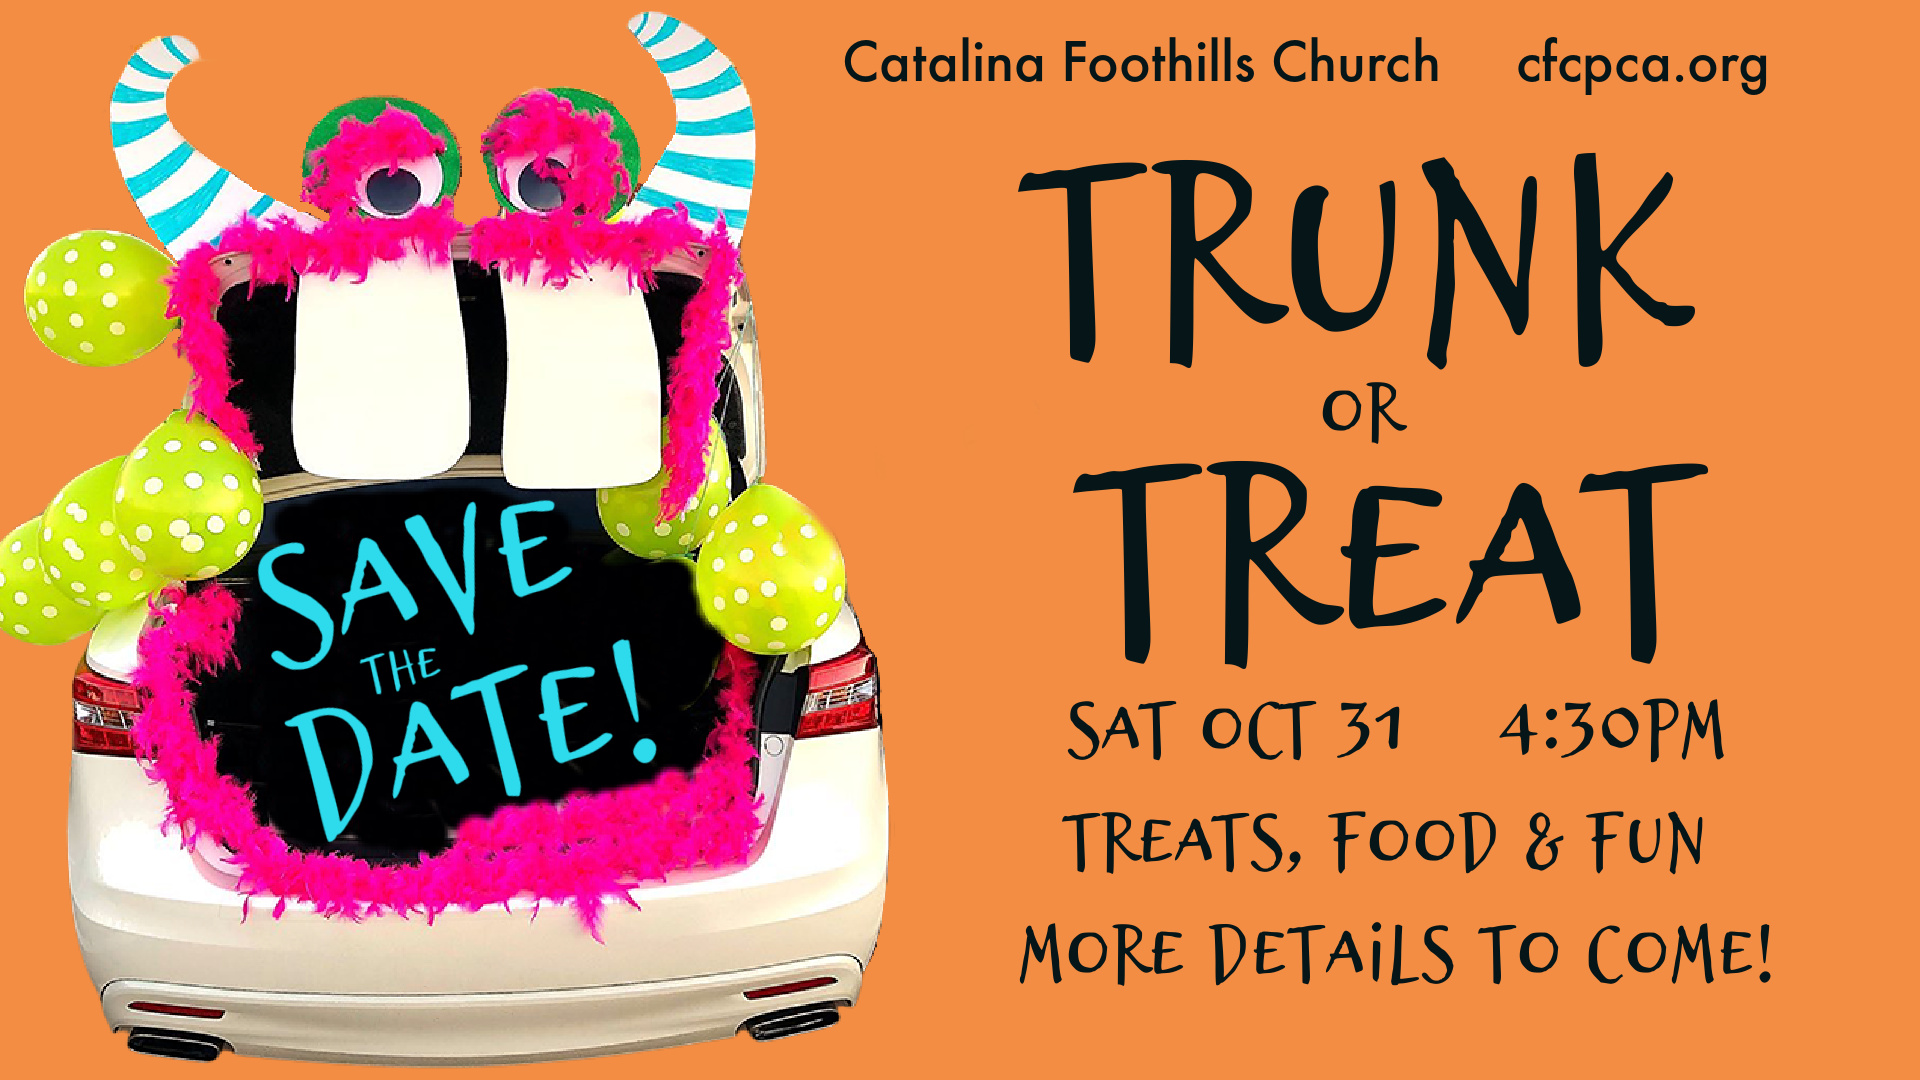 Trunk or Treat save the date 1920 x 1080 (2)